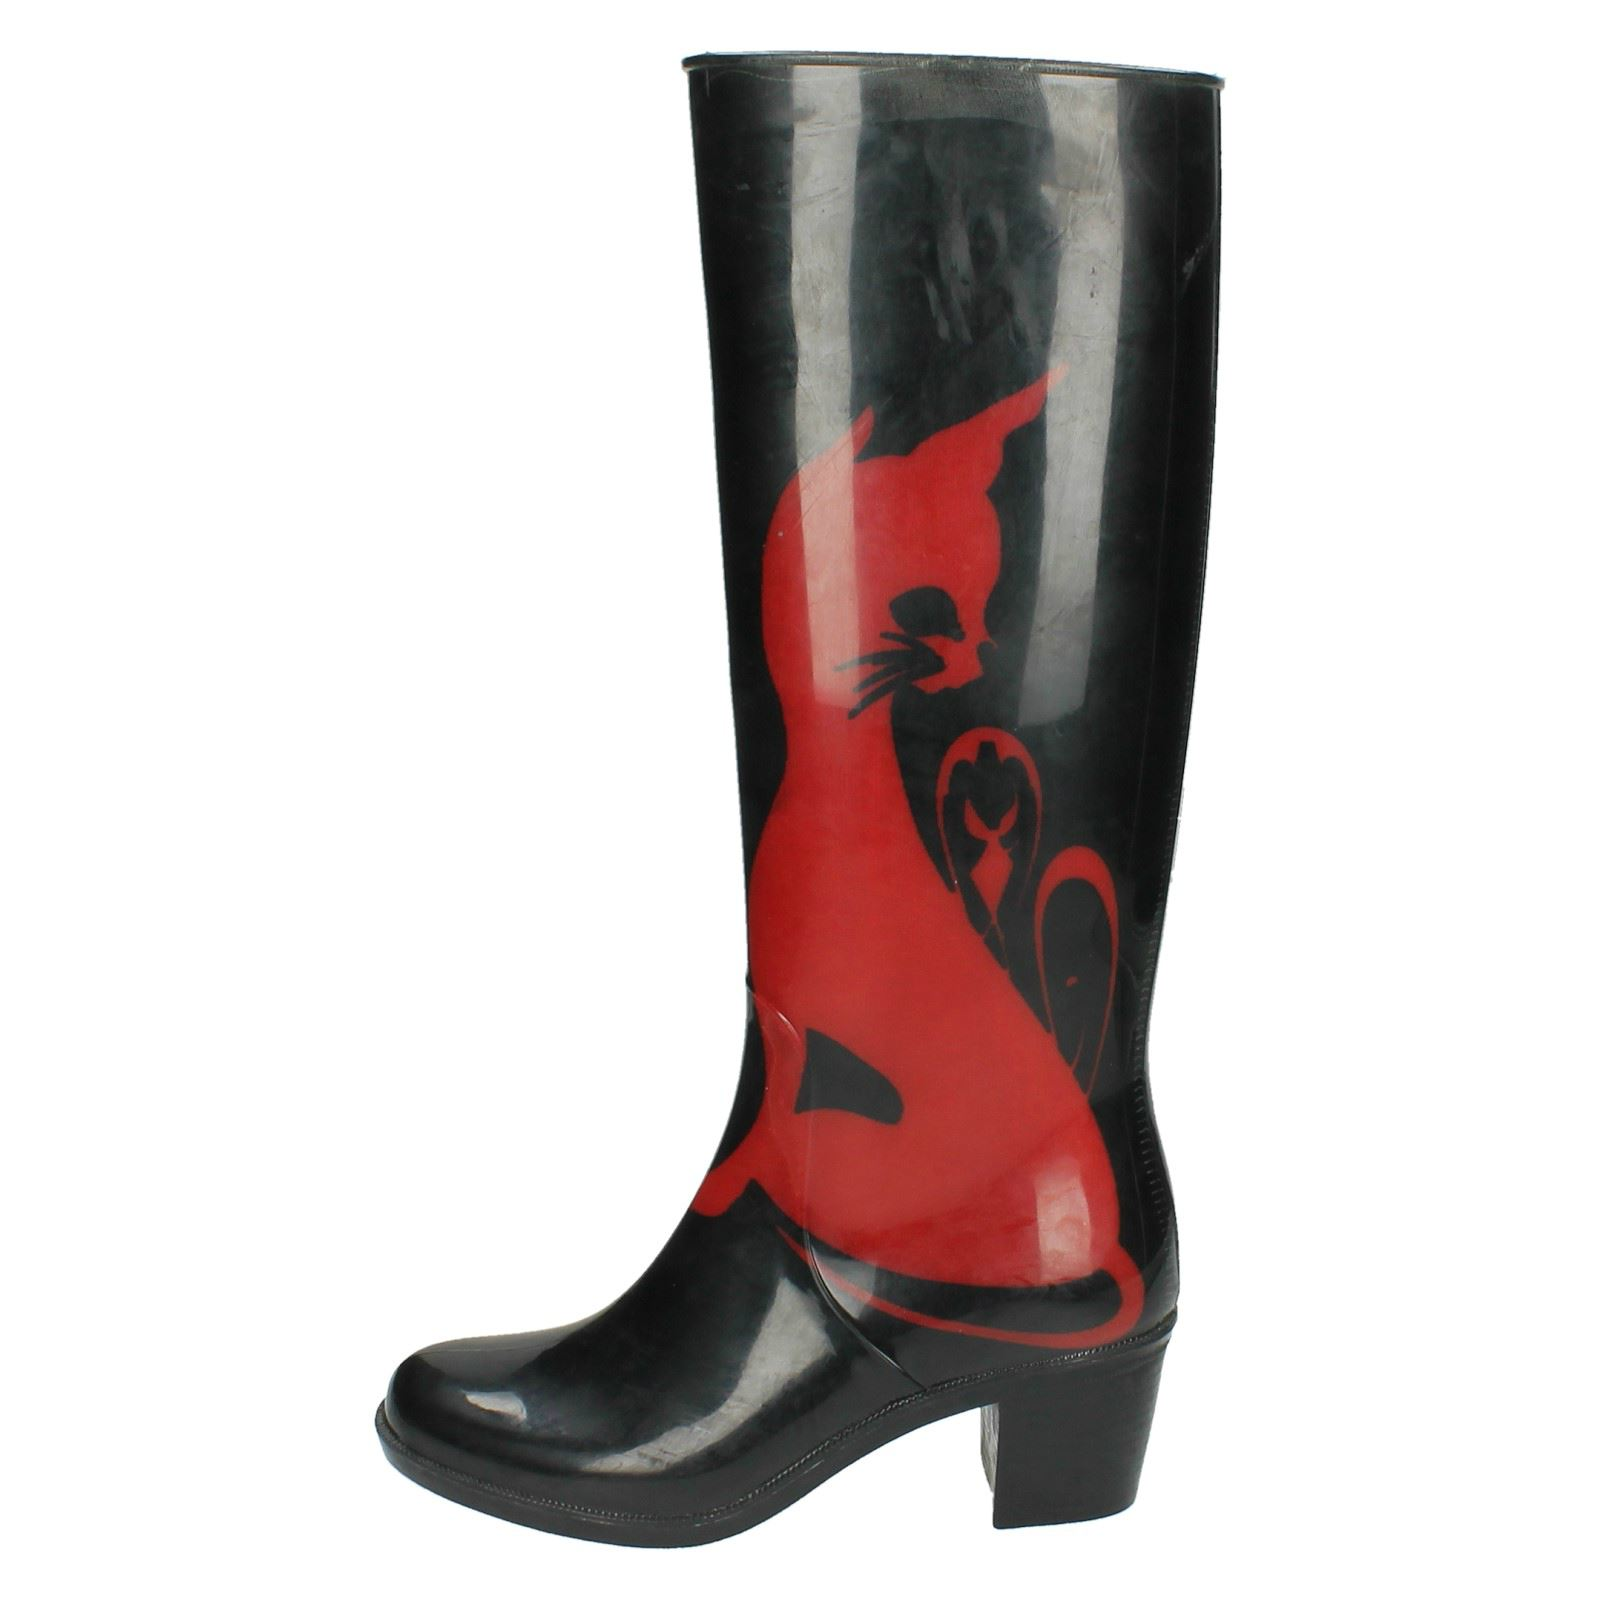 Boots With Kitten Design